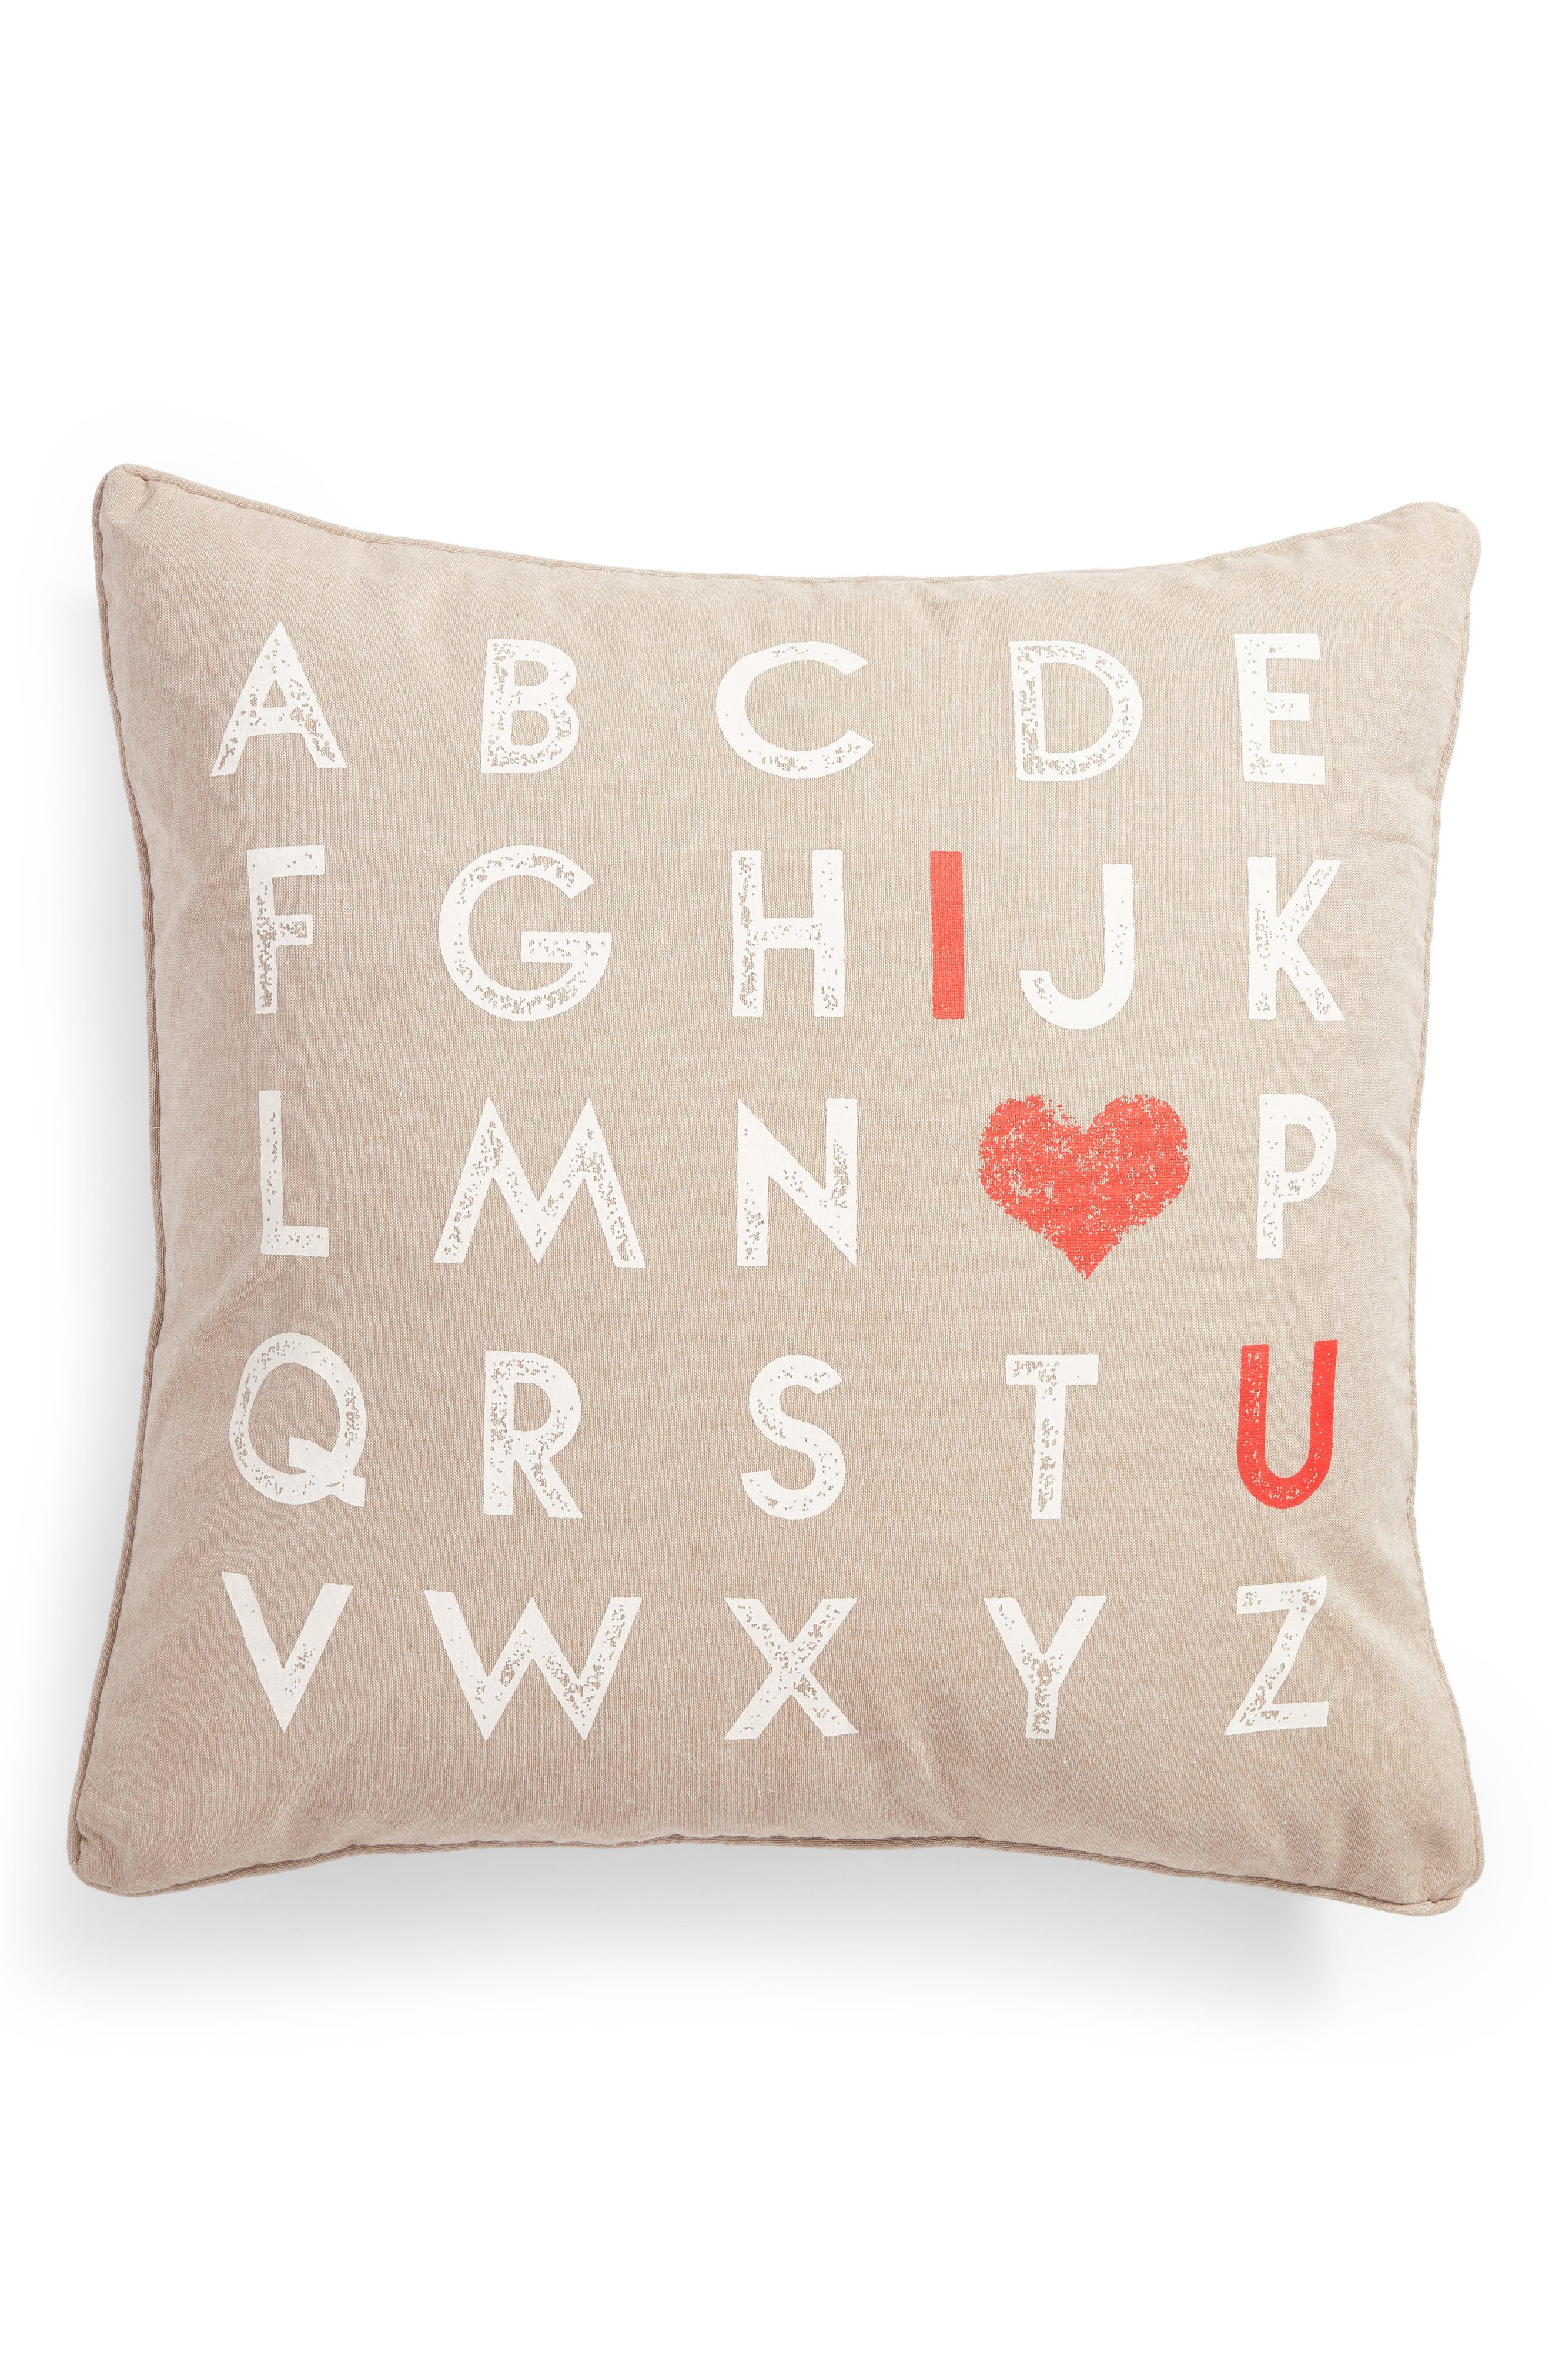 I Heart You Accent Pillow,                             Main thumbnail 1, color,                             250